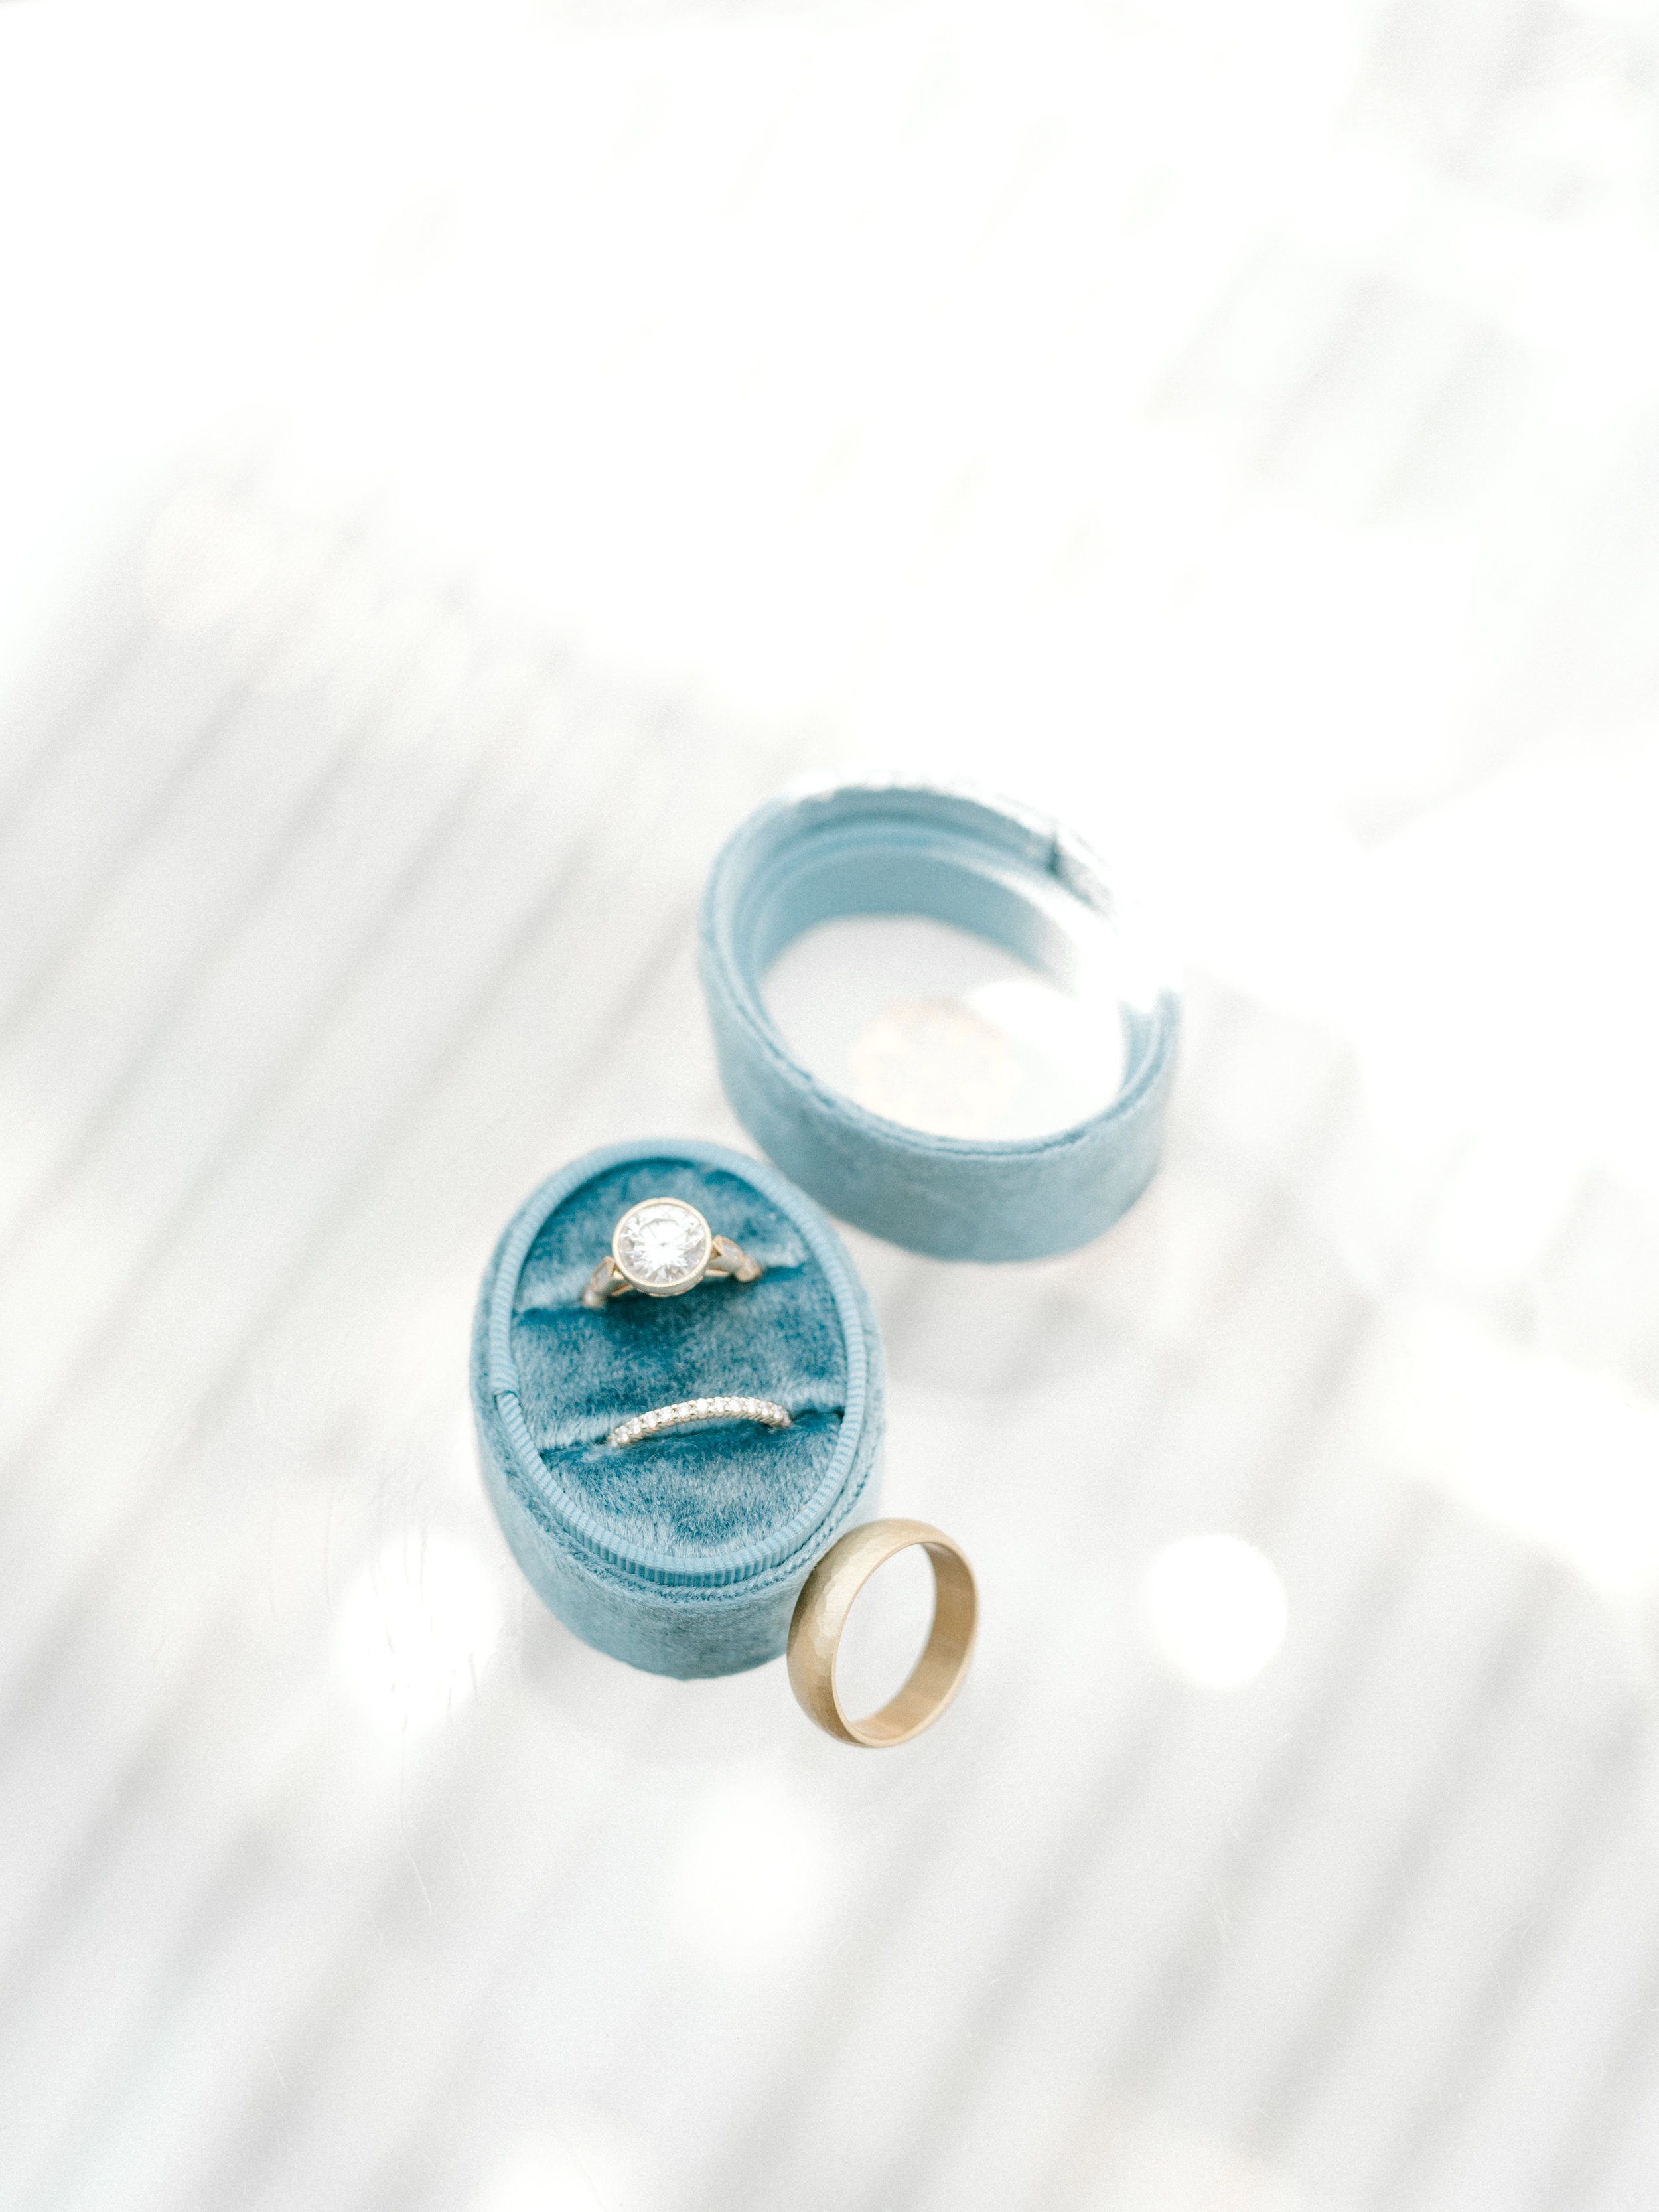 Modern wedding rings in a brushed gold finish. Perfect for the modern couple looking for a classic style.